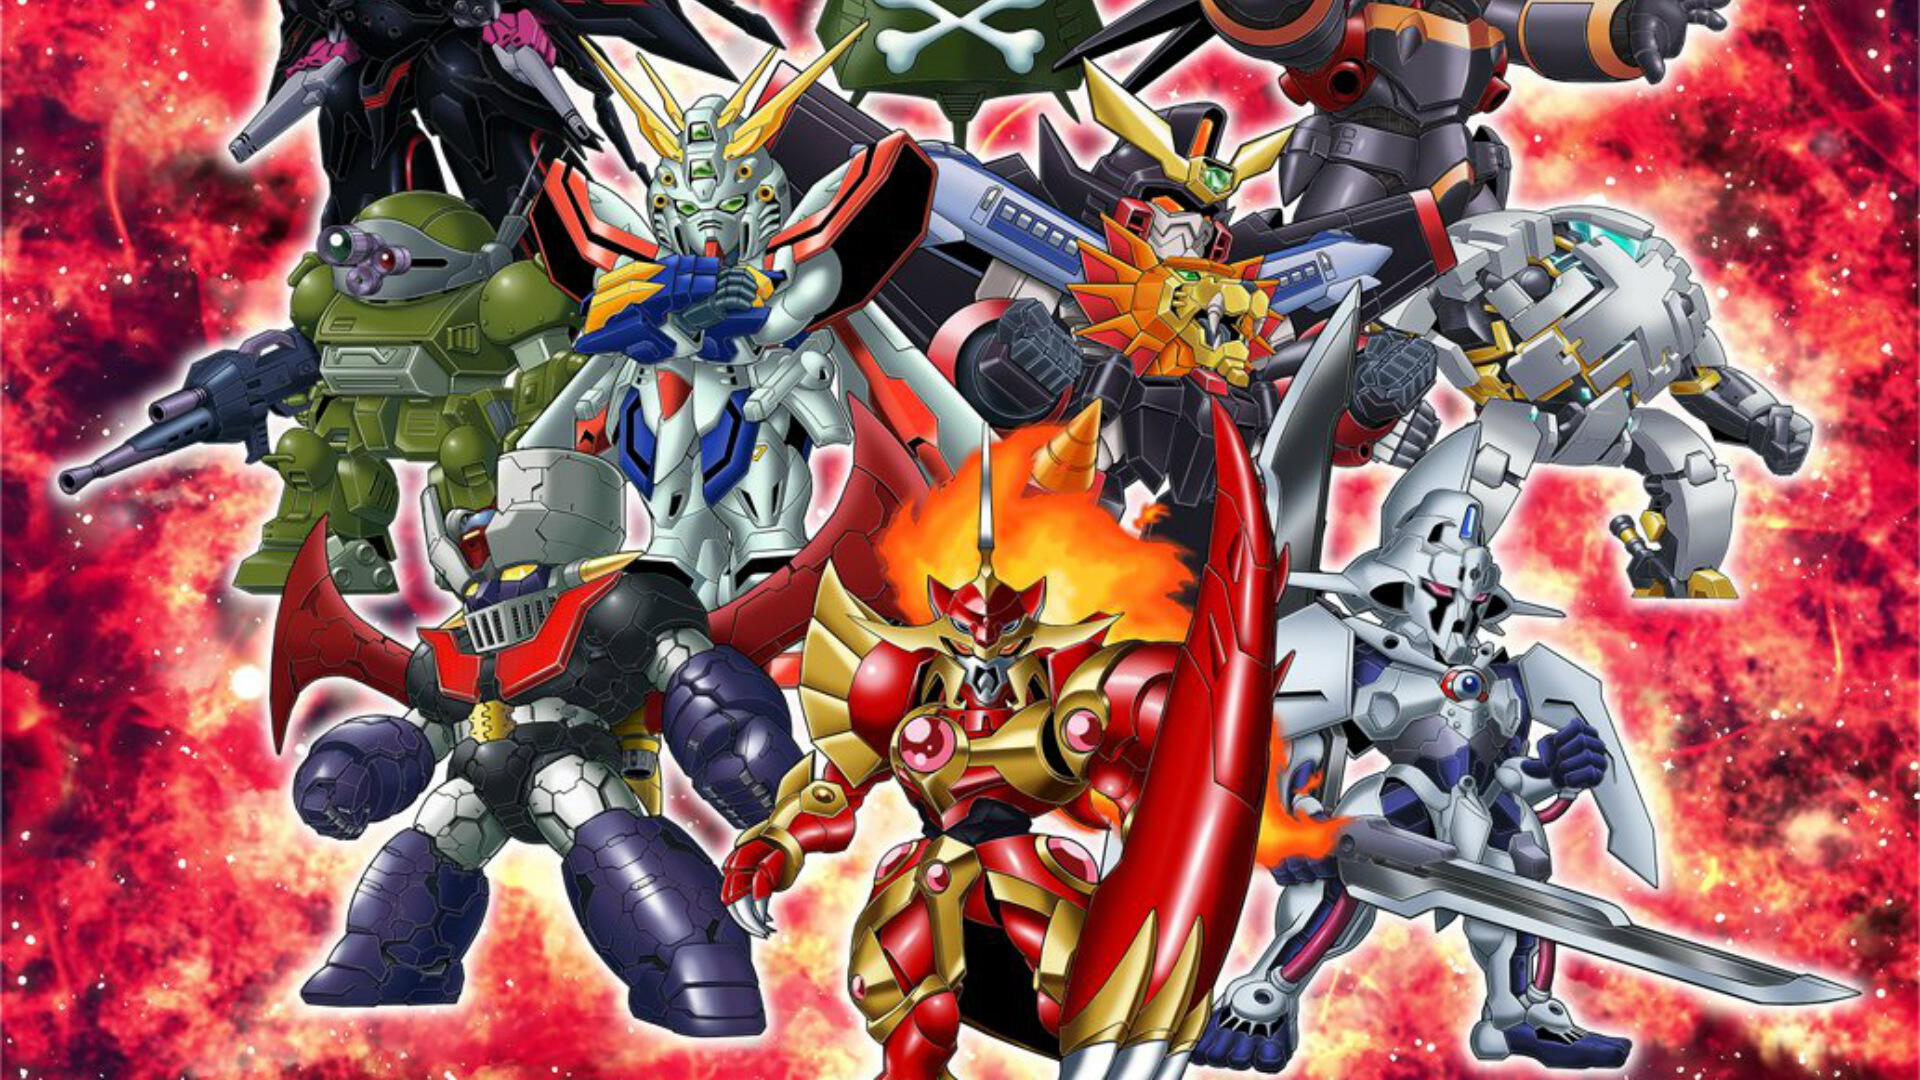 Super Robot Wars T Is Out Today, and We're Here to Answer Your Questions About Where to Find It and More